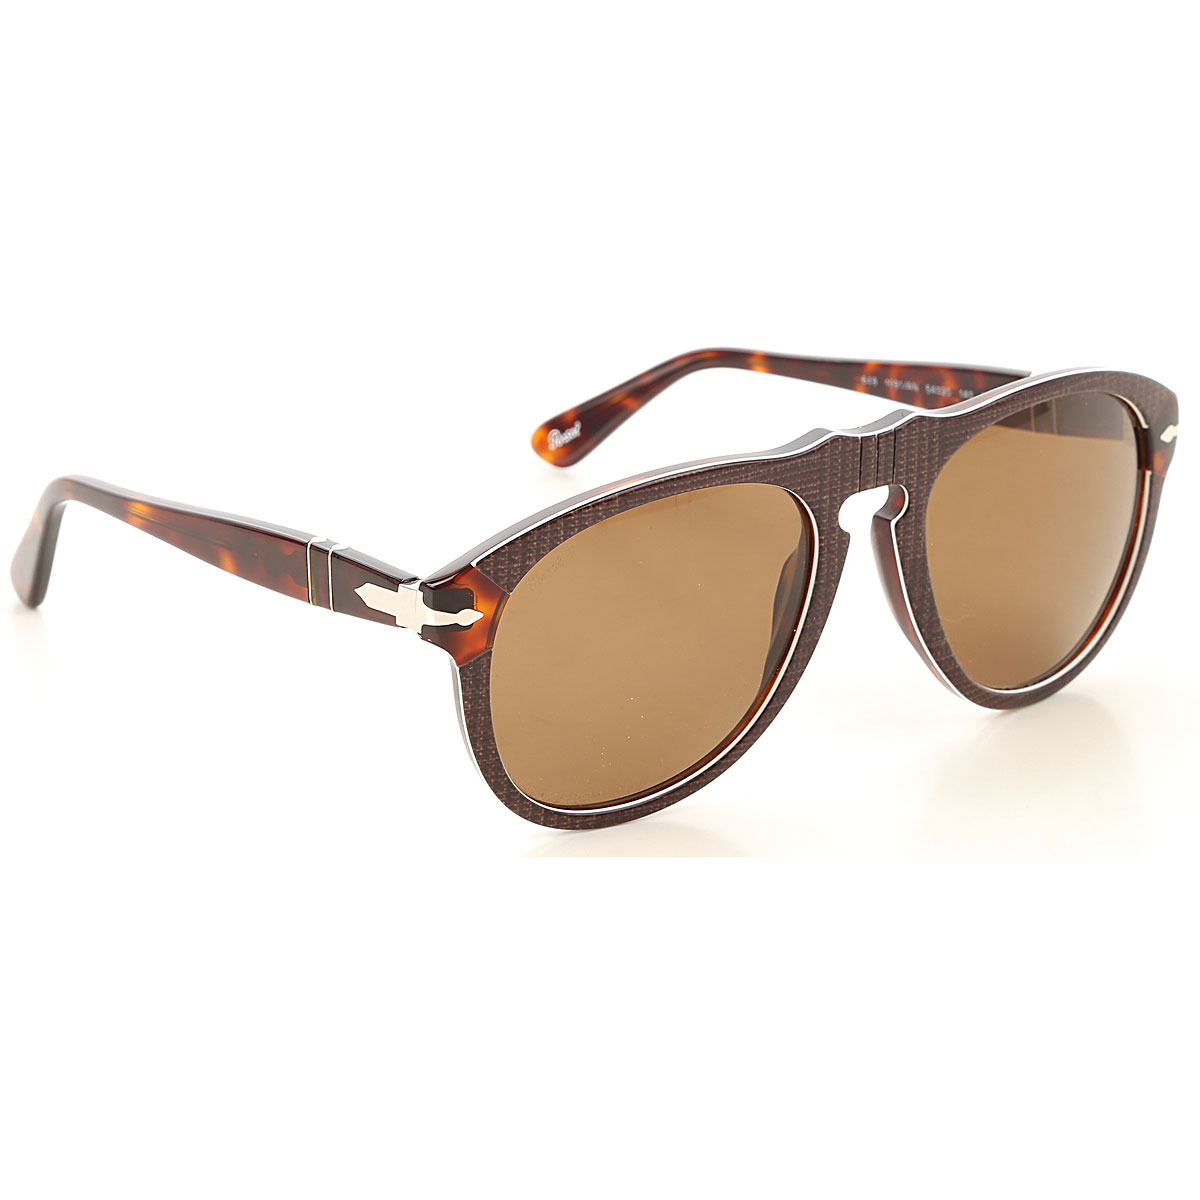 Persol Sunglasses On Sale, Brown Prince Of Wales, 2019